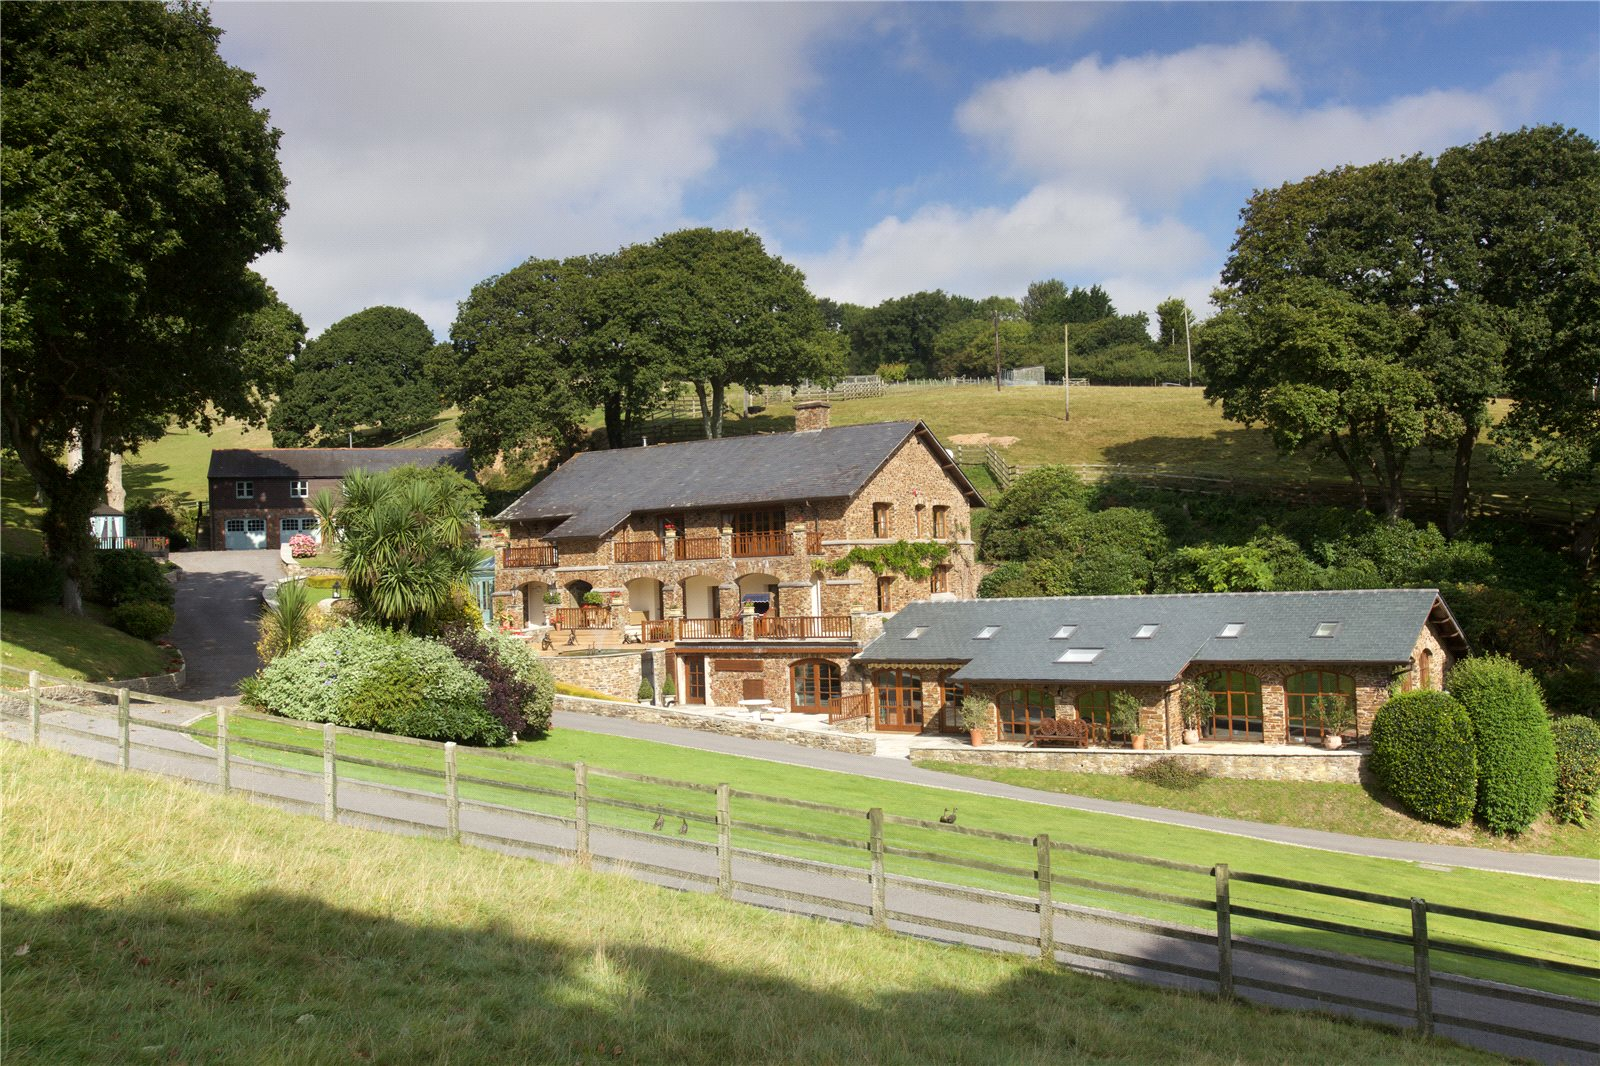 Single Family Home for Sale at Bigbury, Kingsbridge, Devon, TQ7 Kingsbridge, England